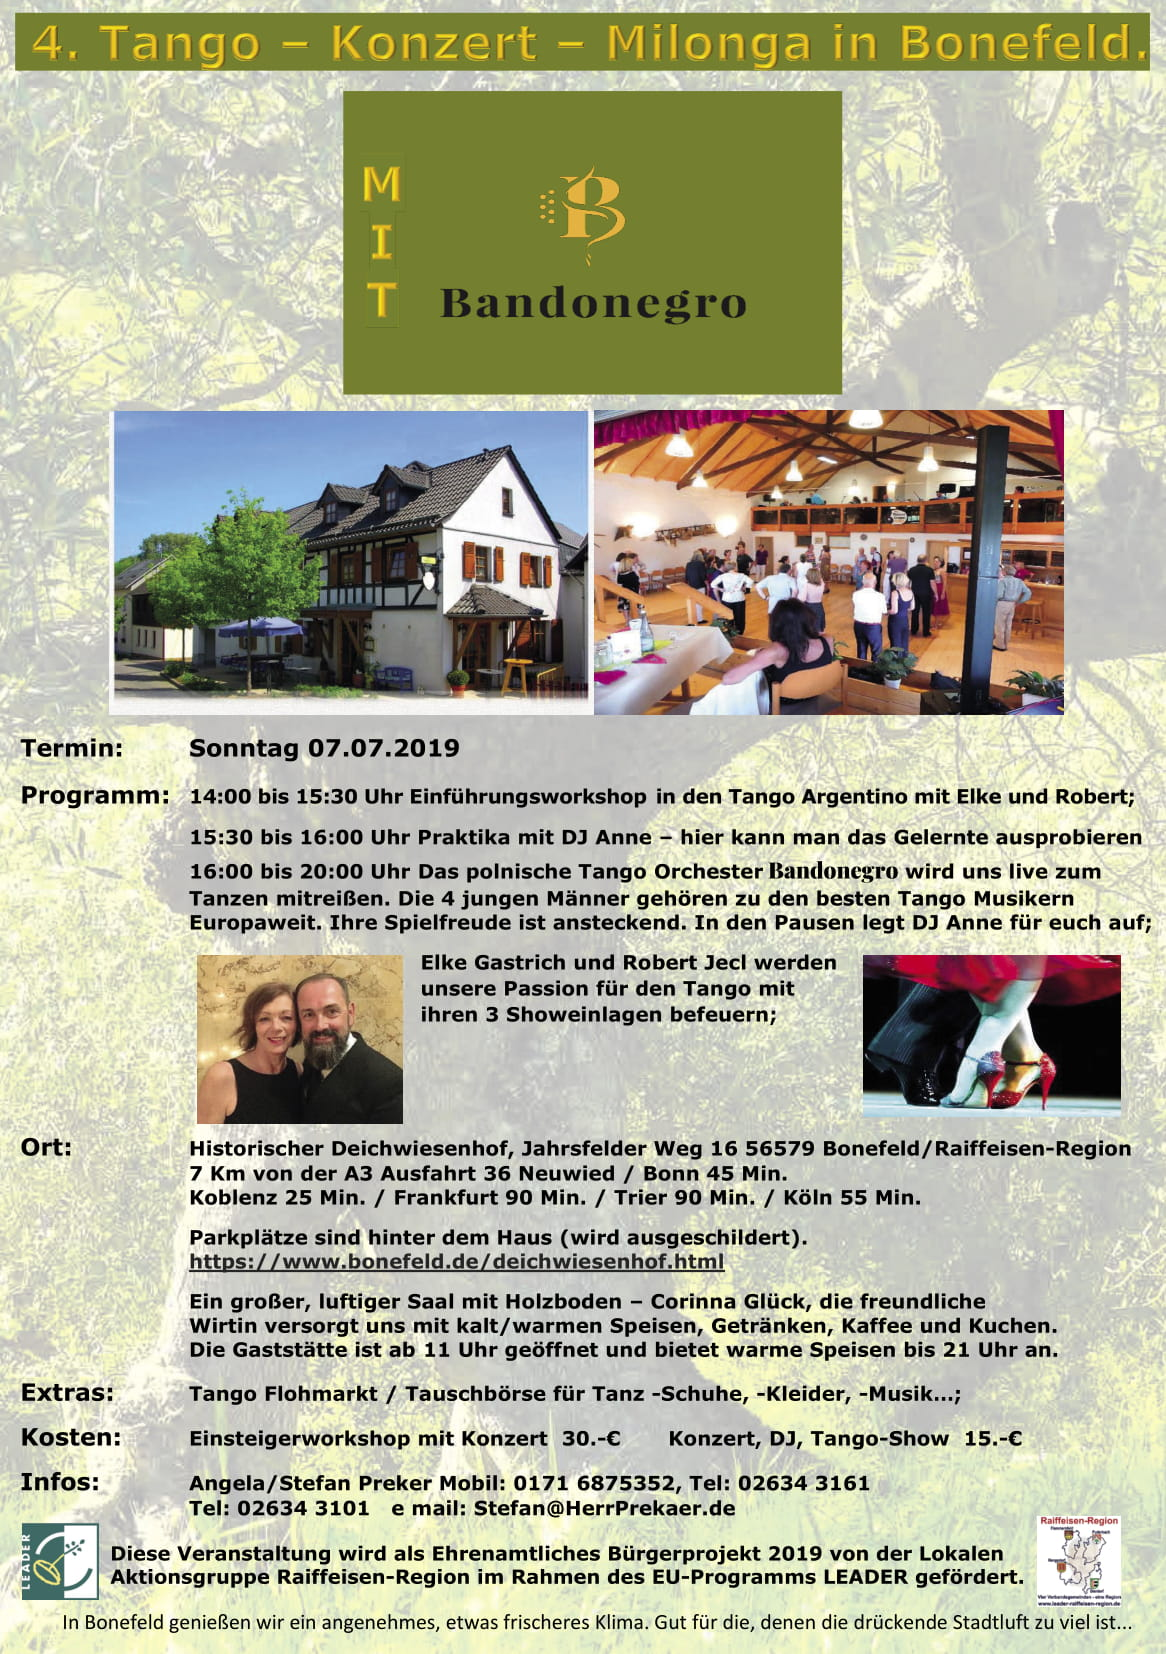 Milonga in Bonefeld